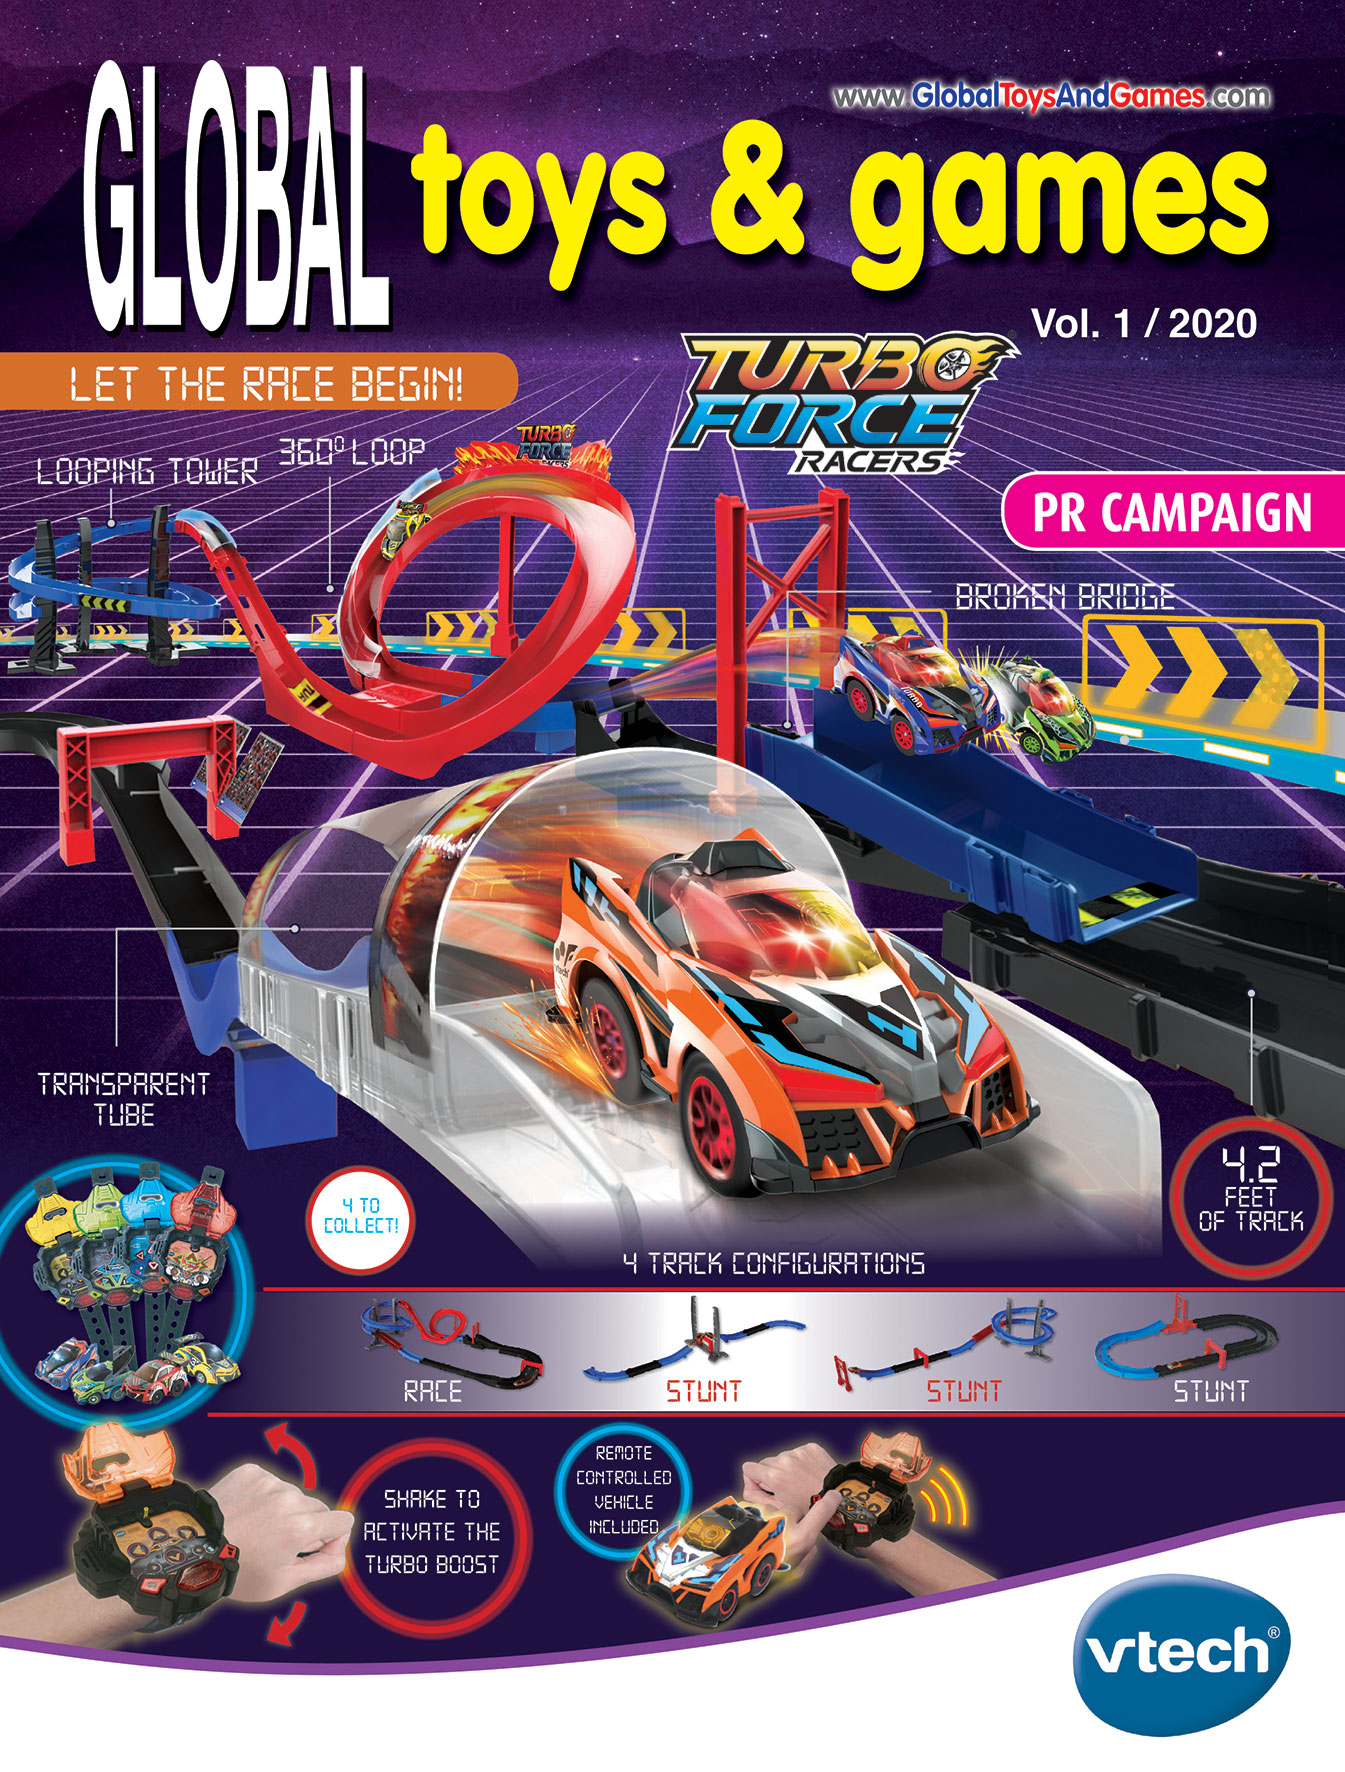 Global Toys & Games